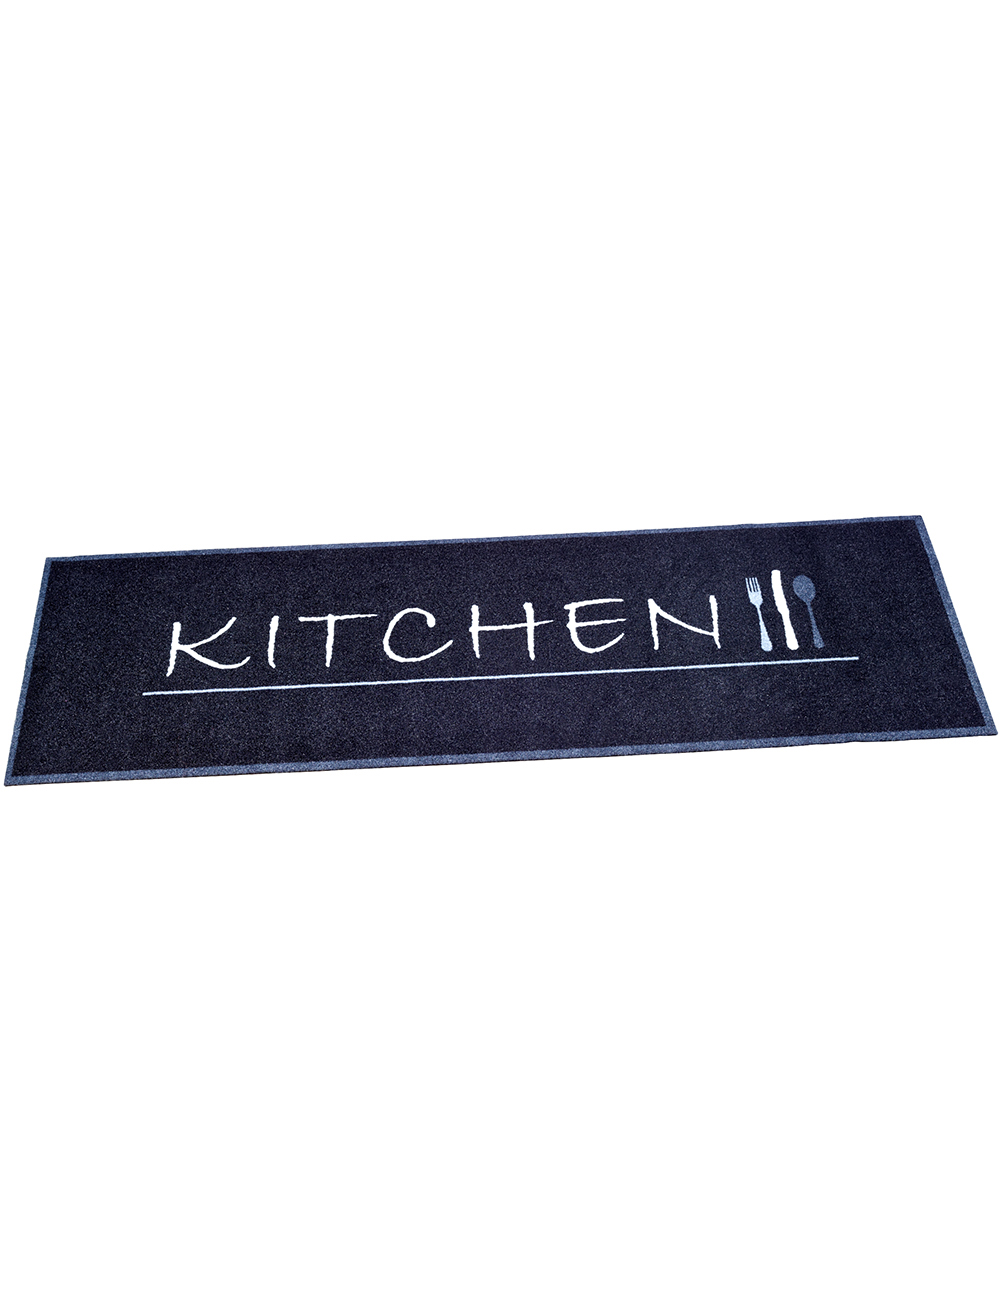 Tapis de cuisine kitchen moderne et de qualit for Tapis cuisine original